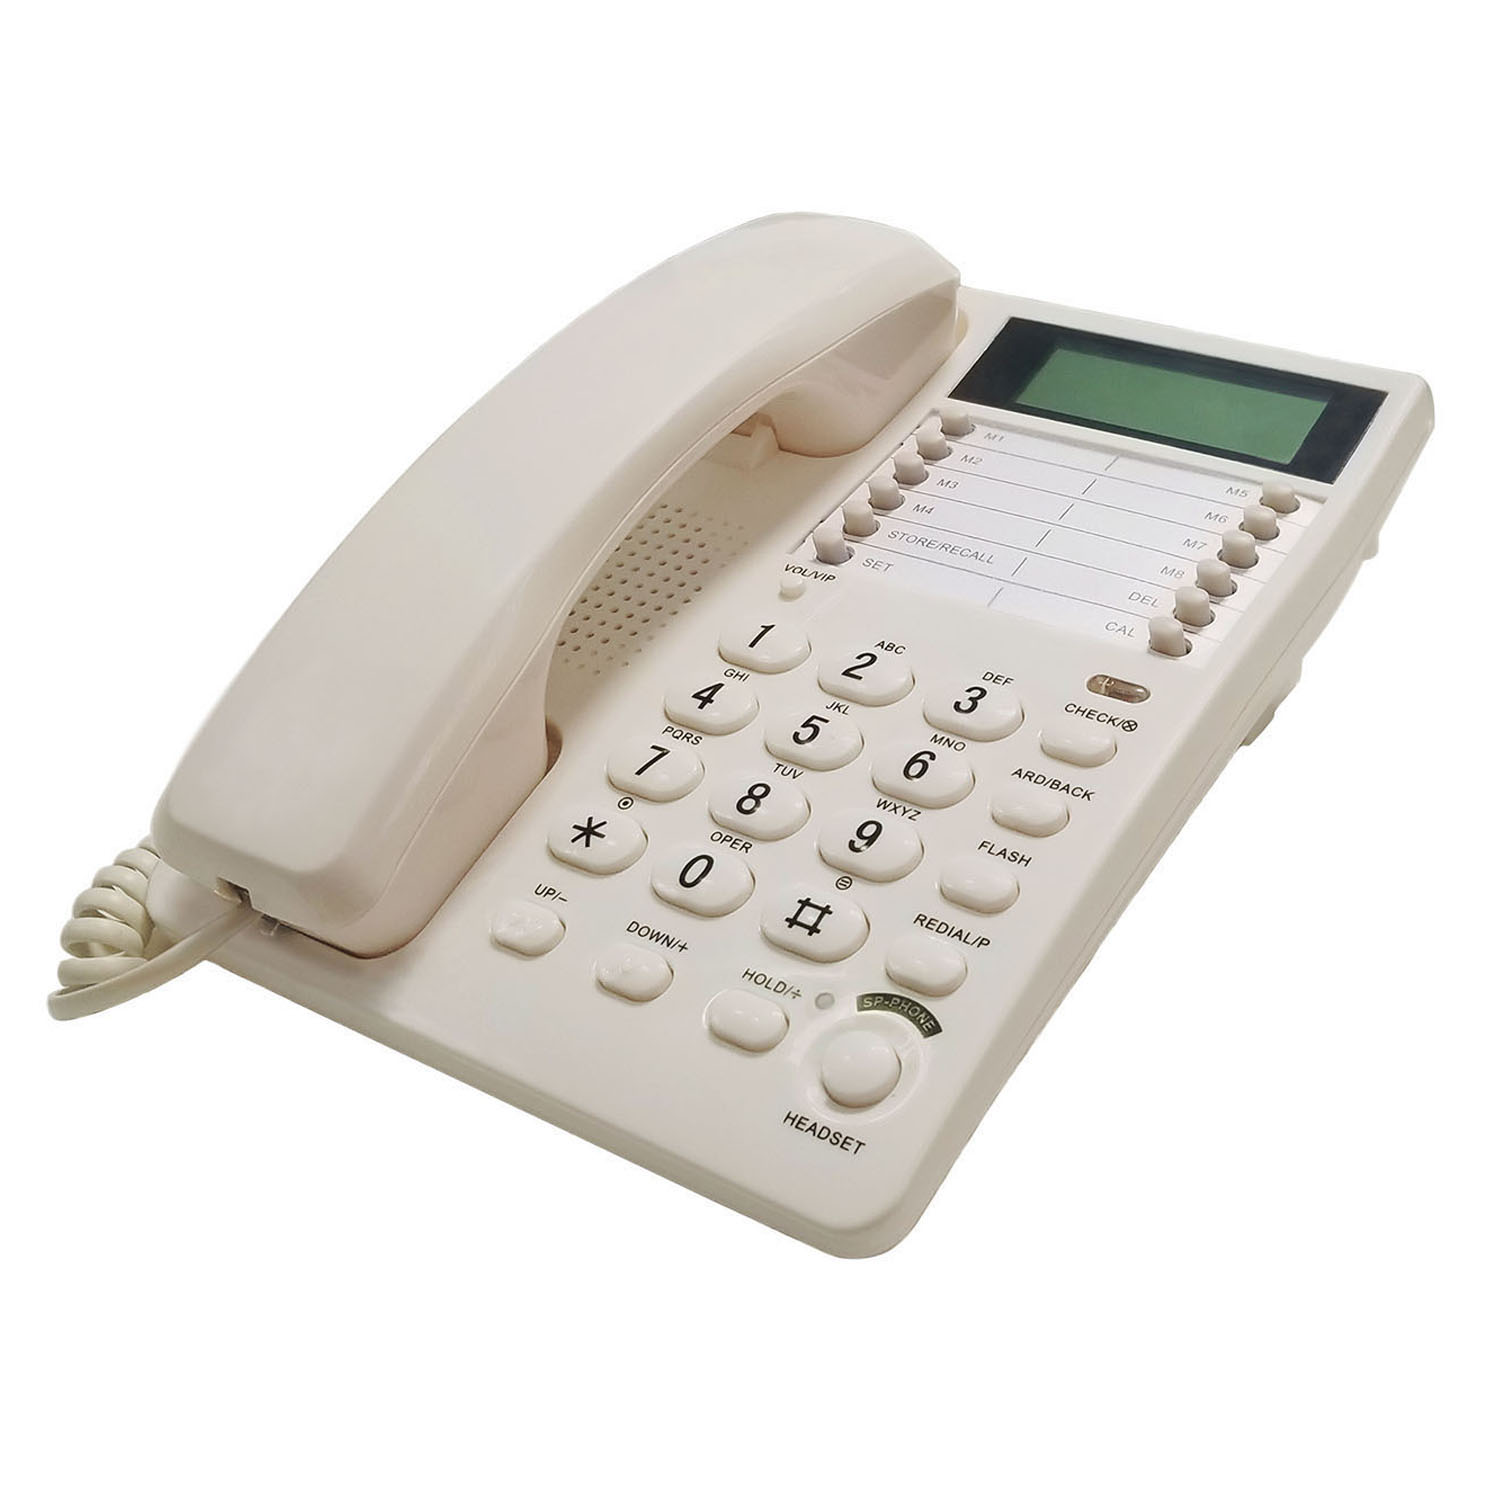 White Caller ID Phone for wall or desk with Speaker and Memory